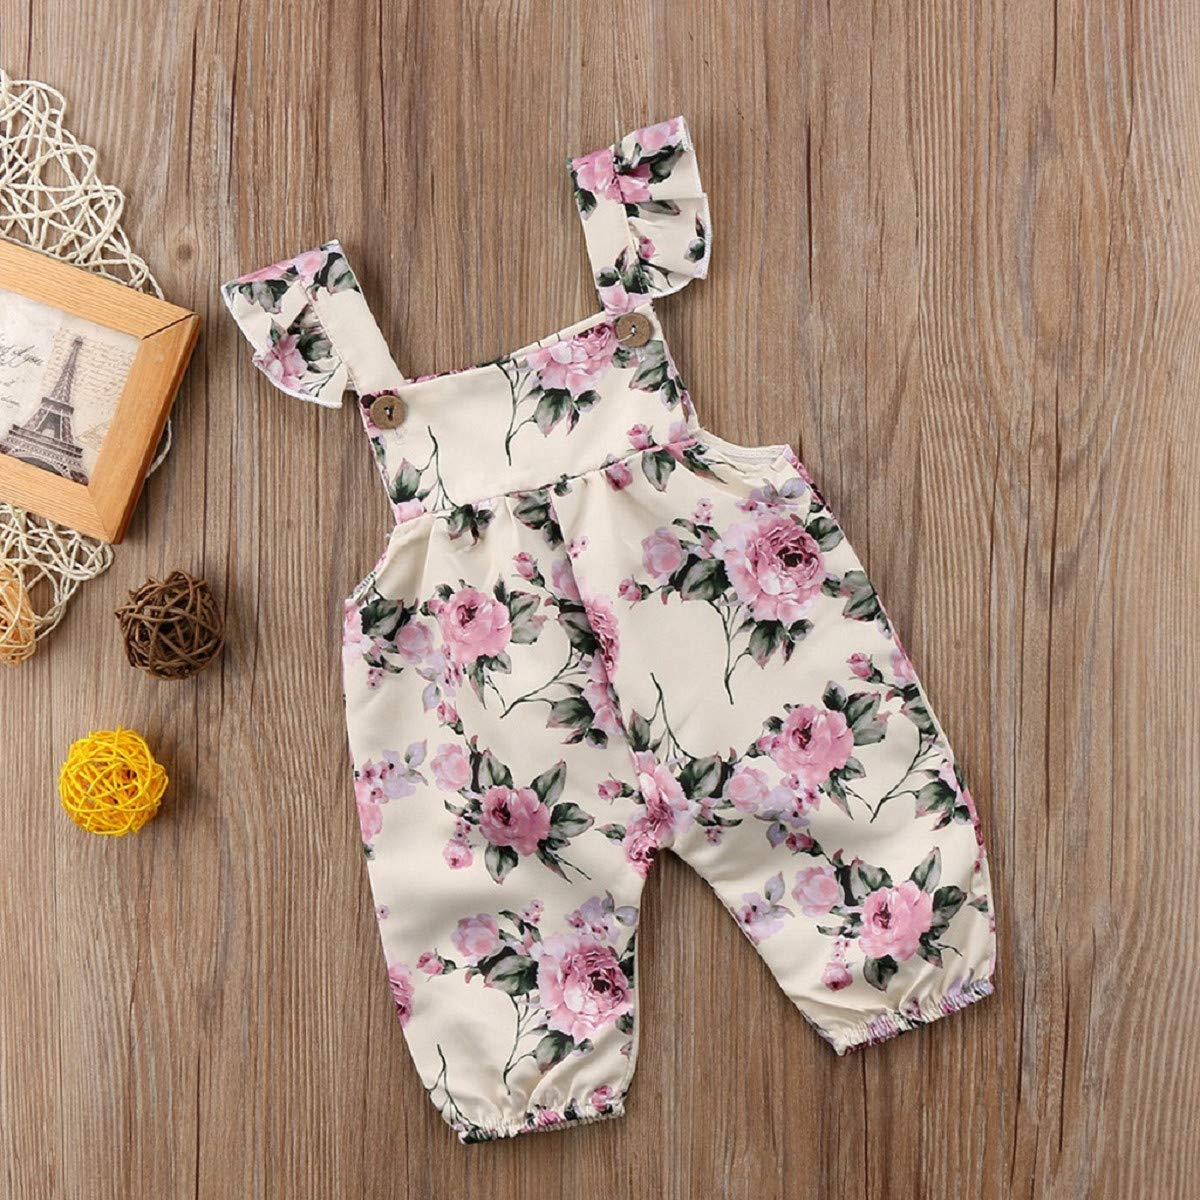 Infant Bodysuit for Girl 2019 Omingkog Infant Baby Girls Sleeveless Floral Print Jumpsuit Romper Outfits Clothes